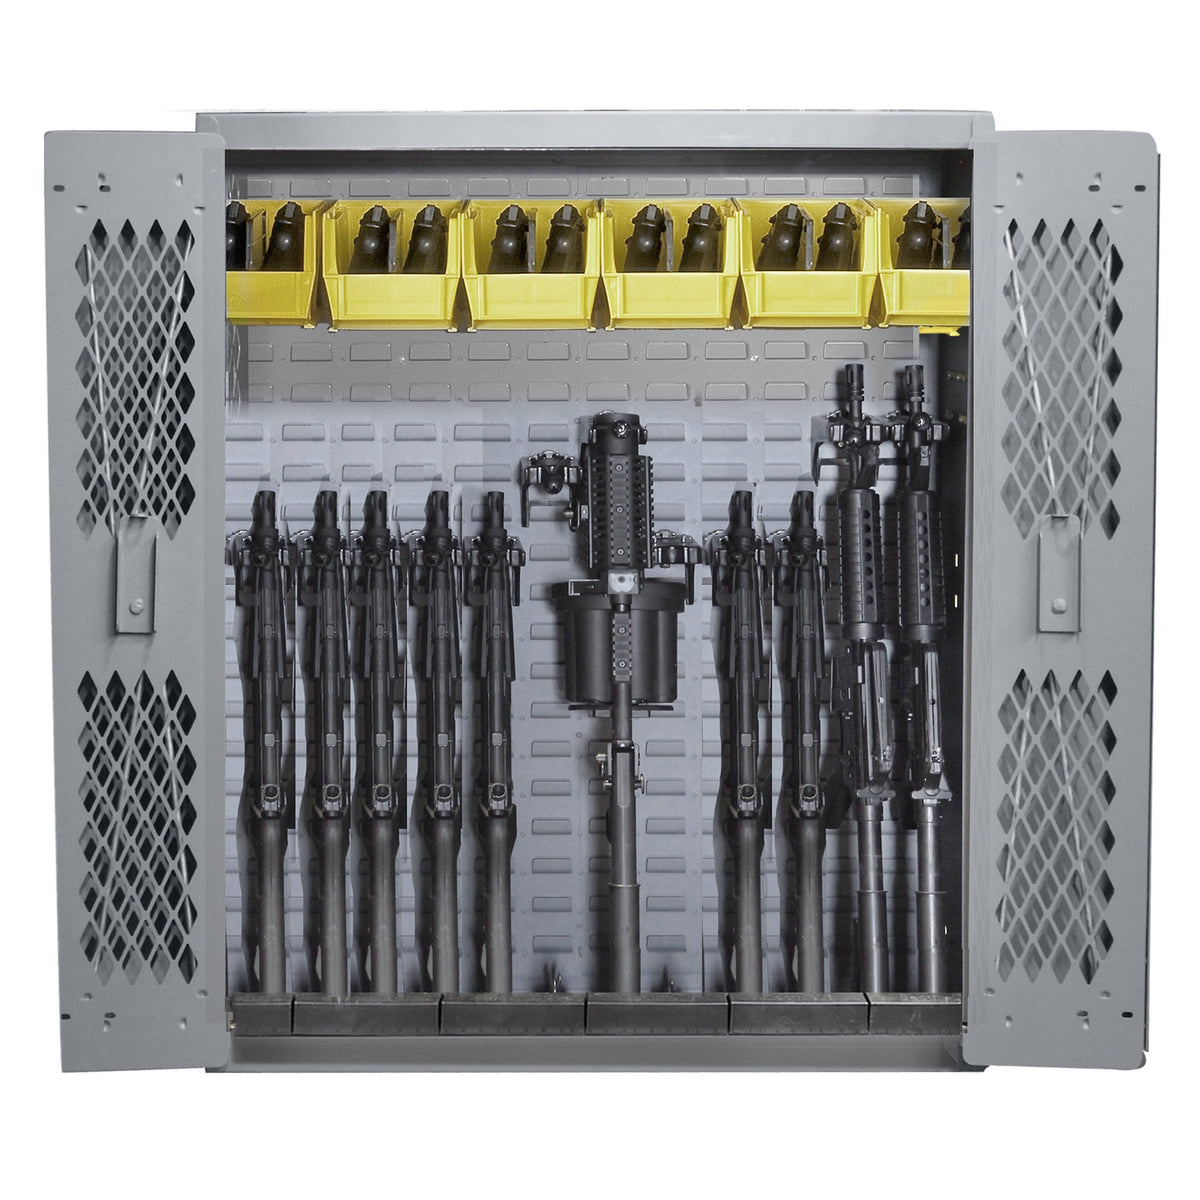 SecureIt Tactical SEC-100-12R Model 44: 12 Rifle Storage Cabinet